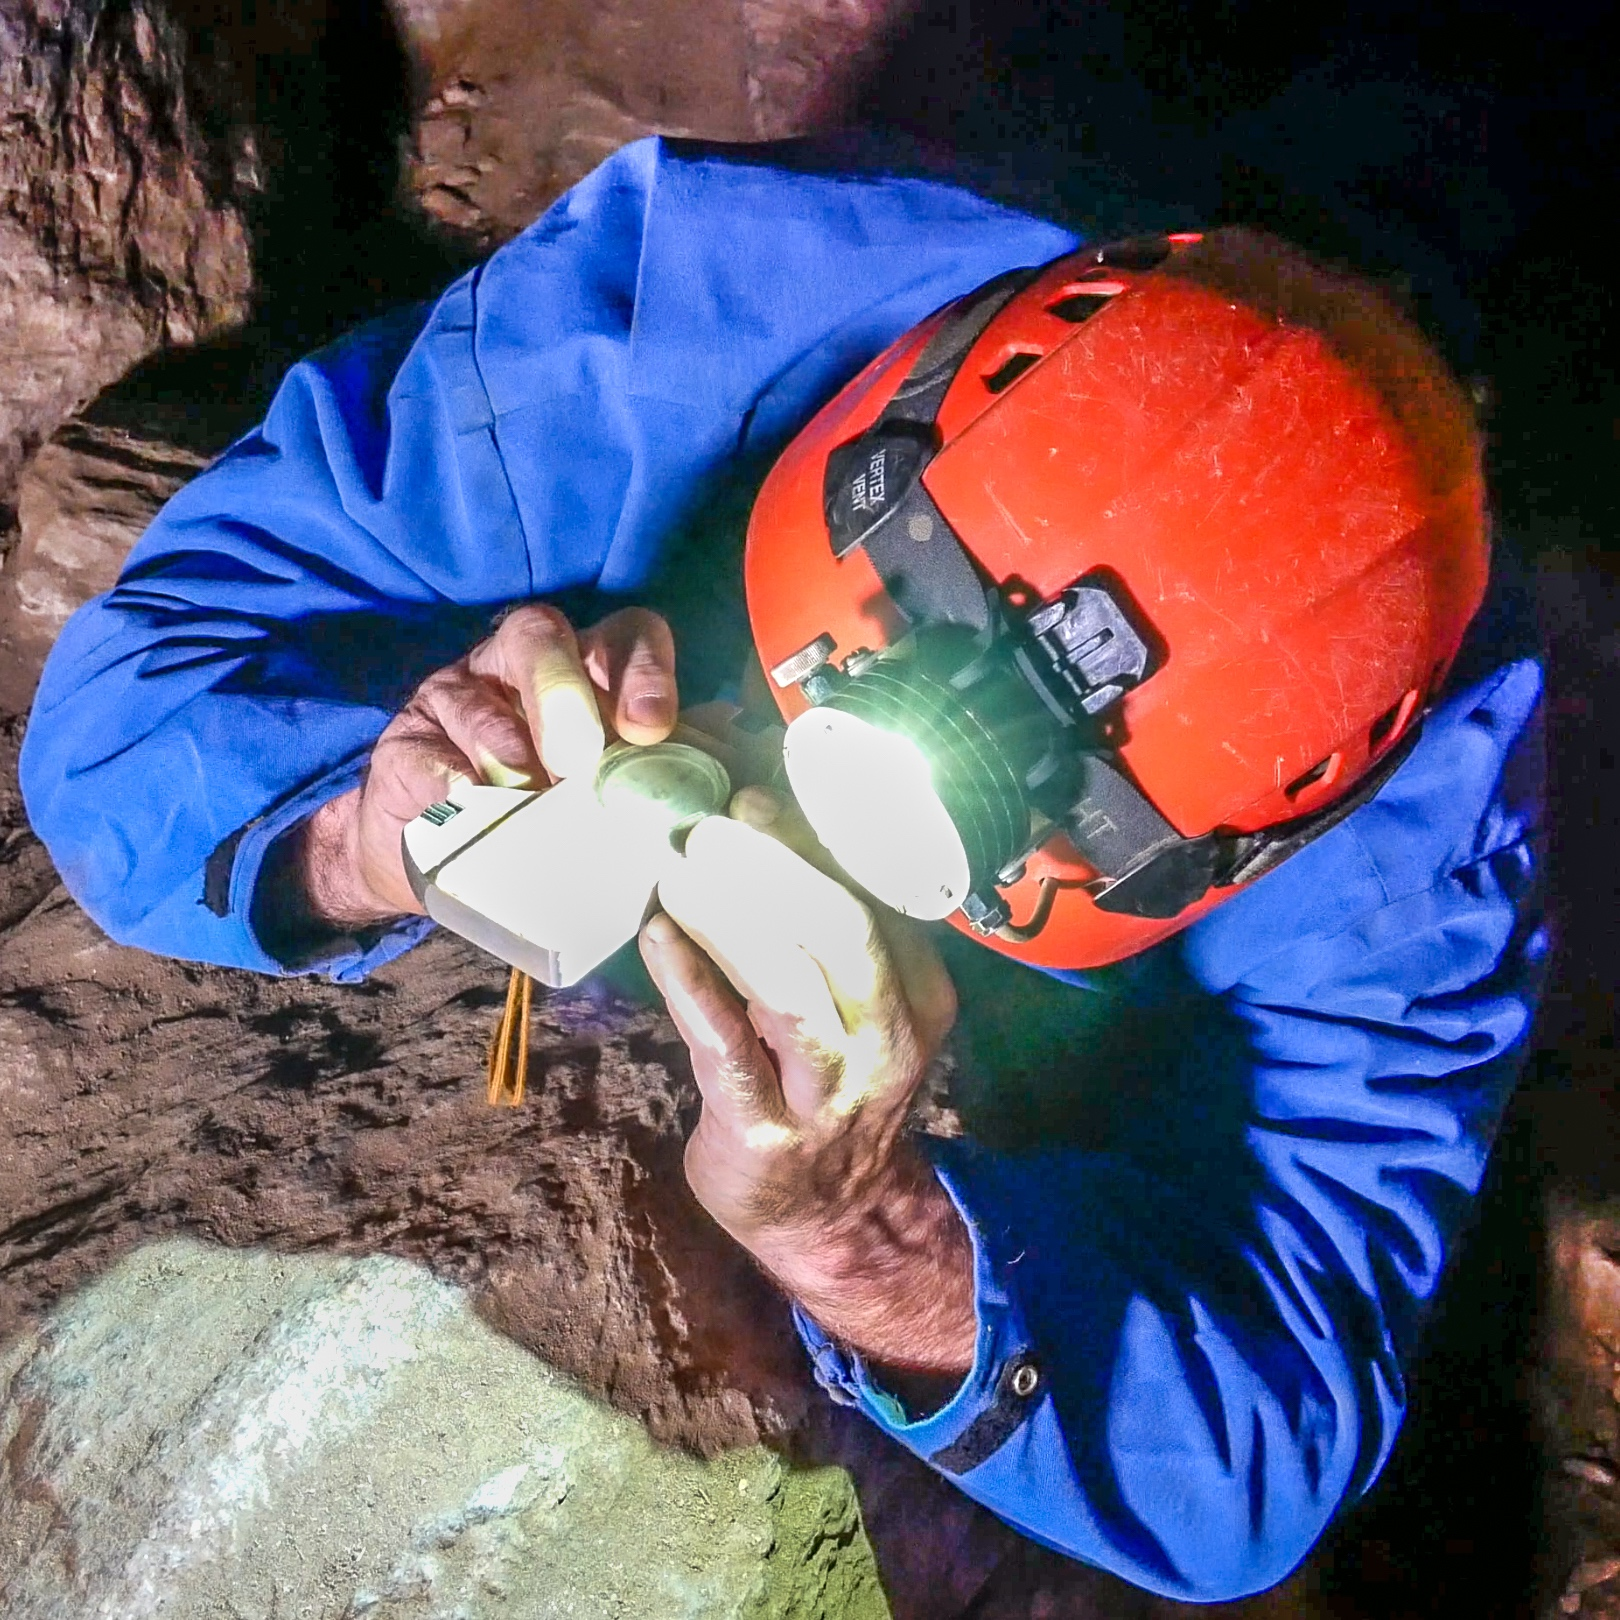 Cave Survey - Exploration and scientific documentation go hand-in-hand. Surveying and publishing new discoveries is the best way to improve our understanding of caves, and better manage and protect them.